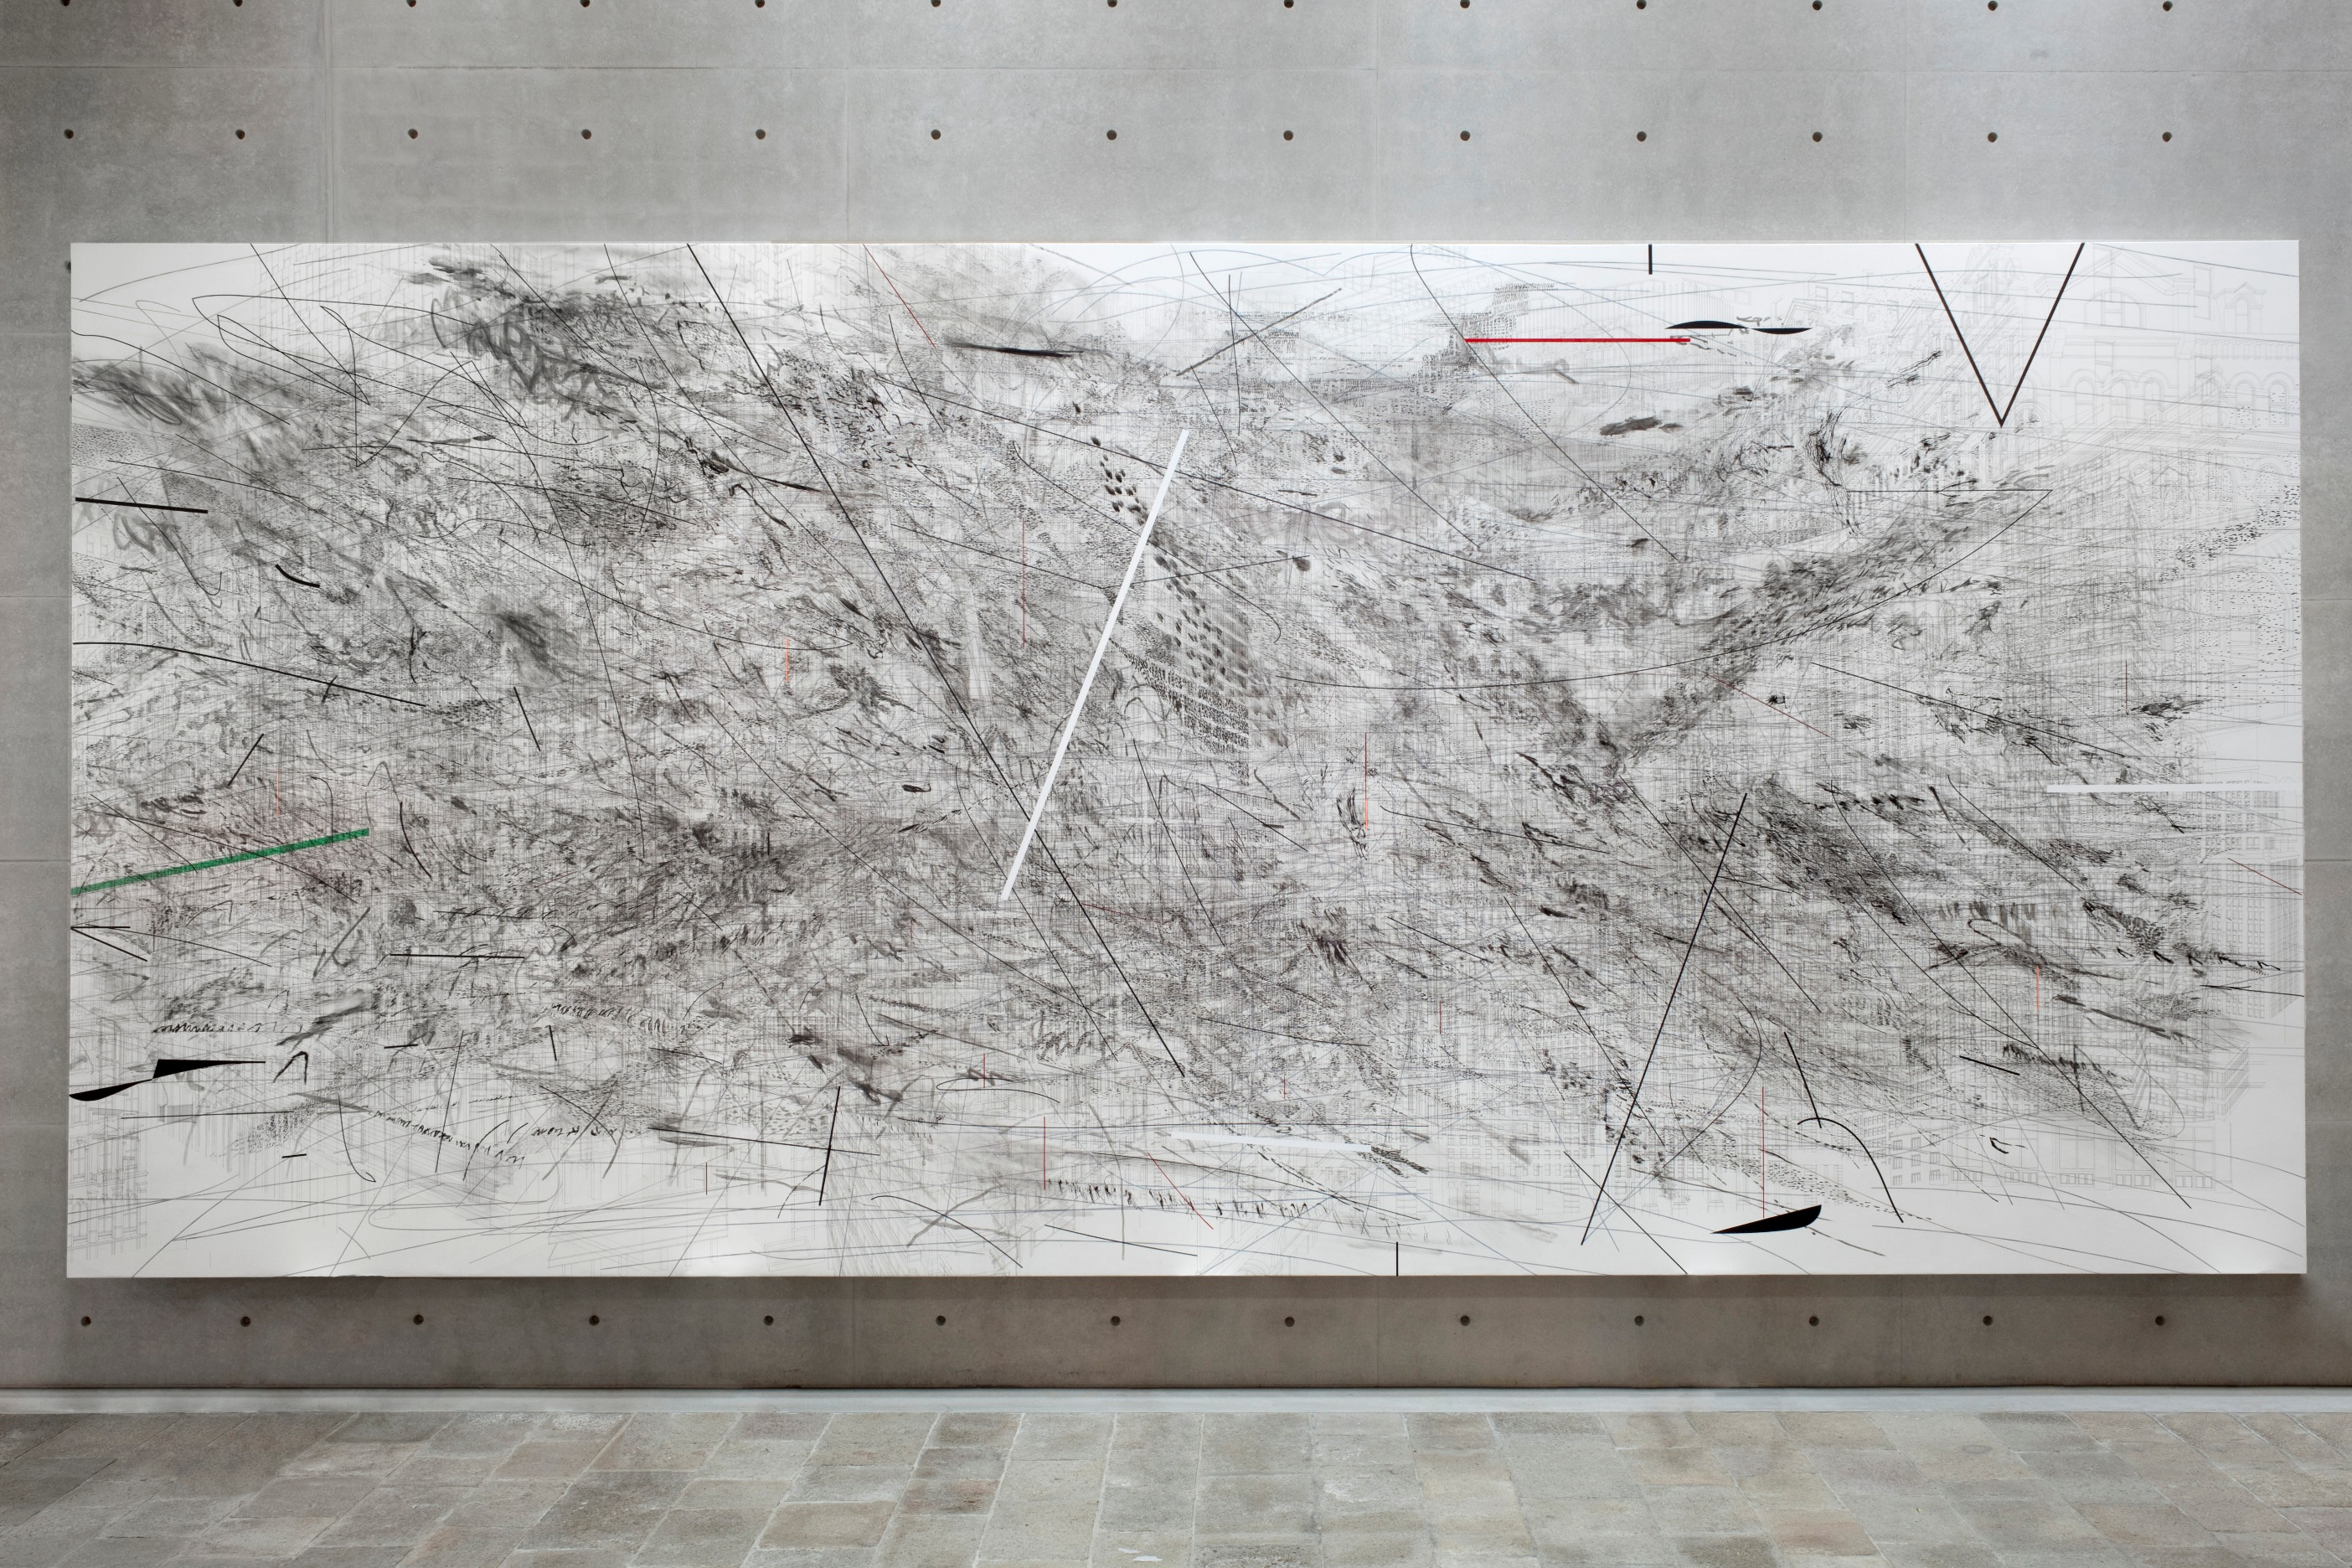 Julie Mehretu - Untitled - 2011 - Courtesy the artist and Carlier | Gebauer © Palazzo Grassi, photo: ORCH orsenigo_chemollo